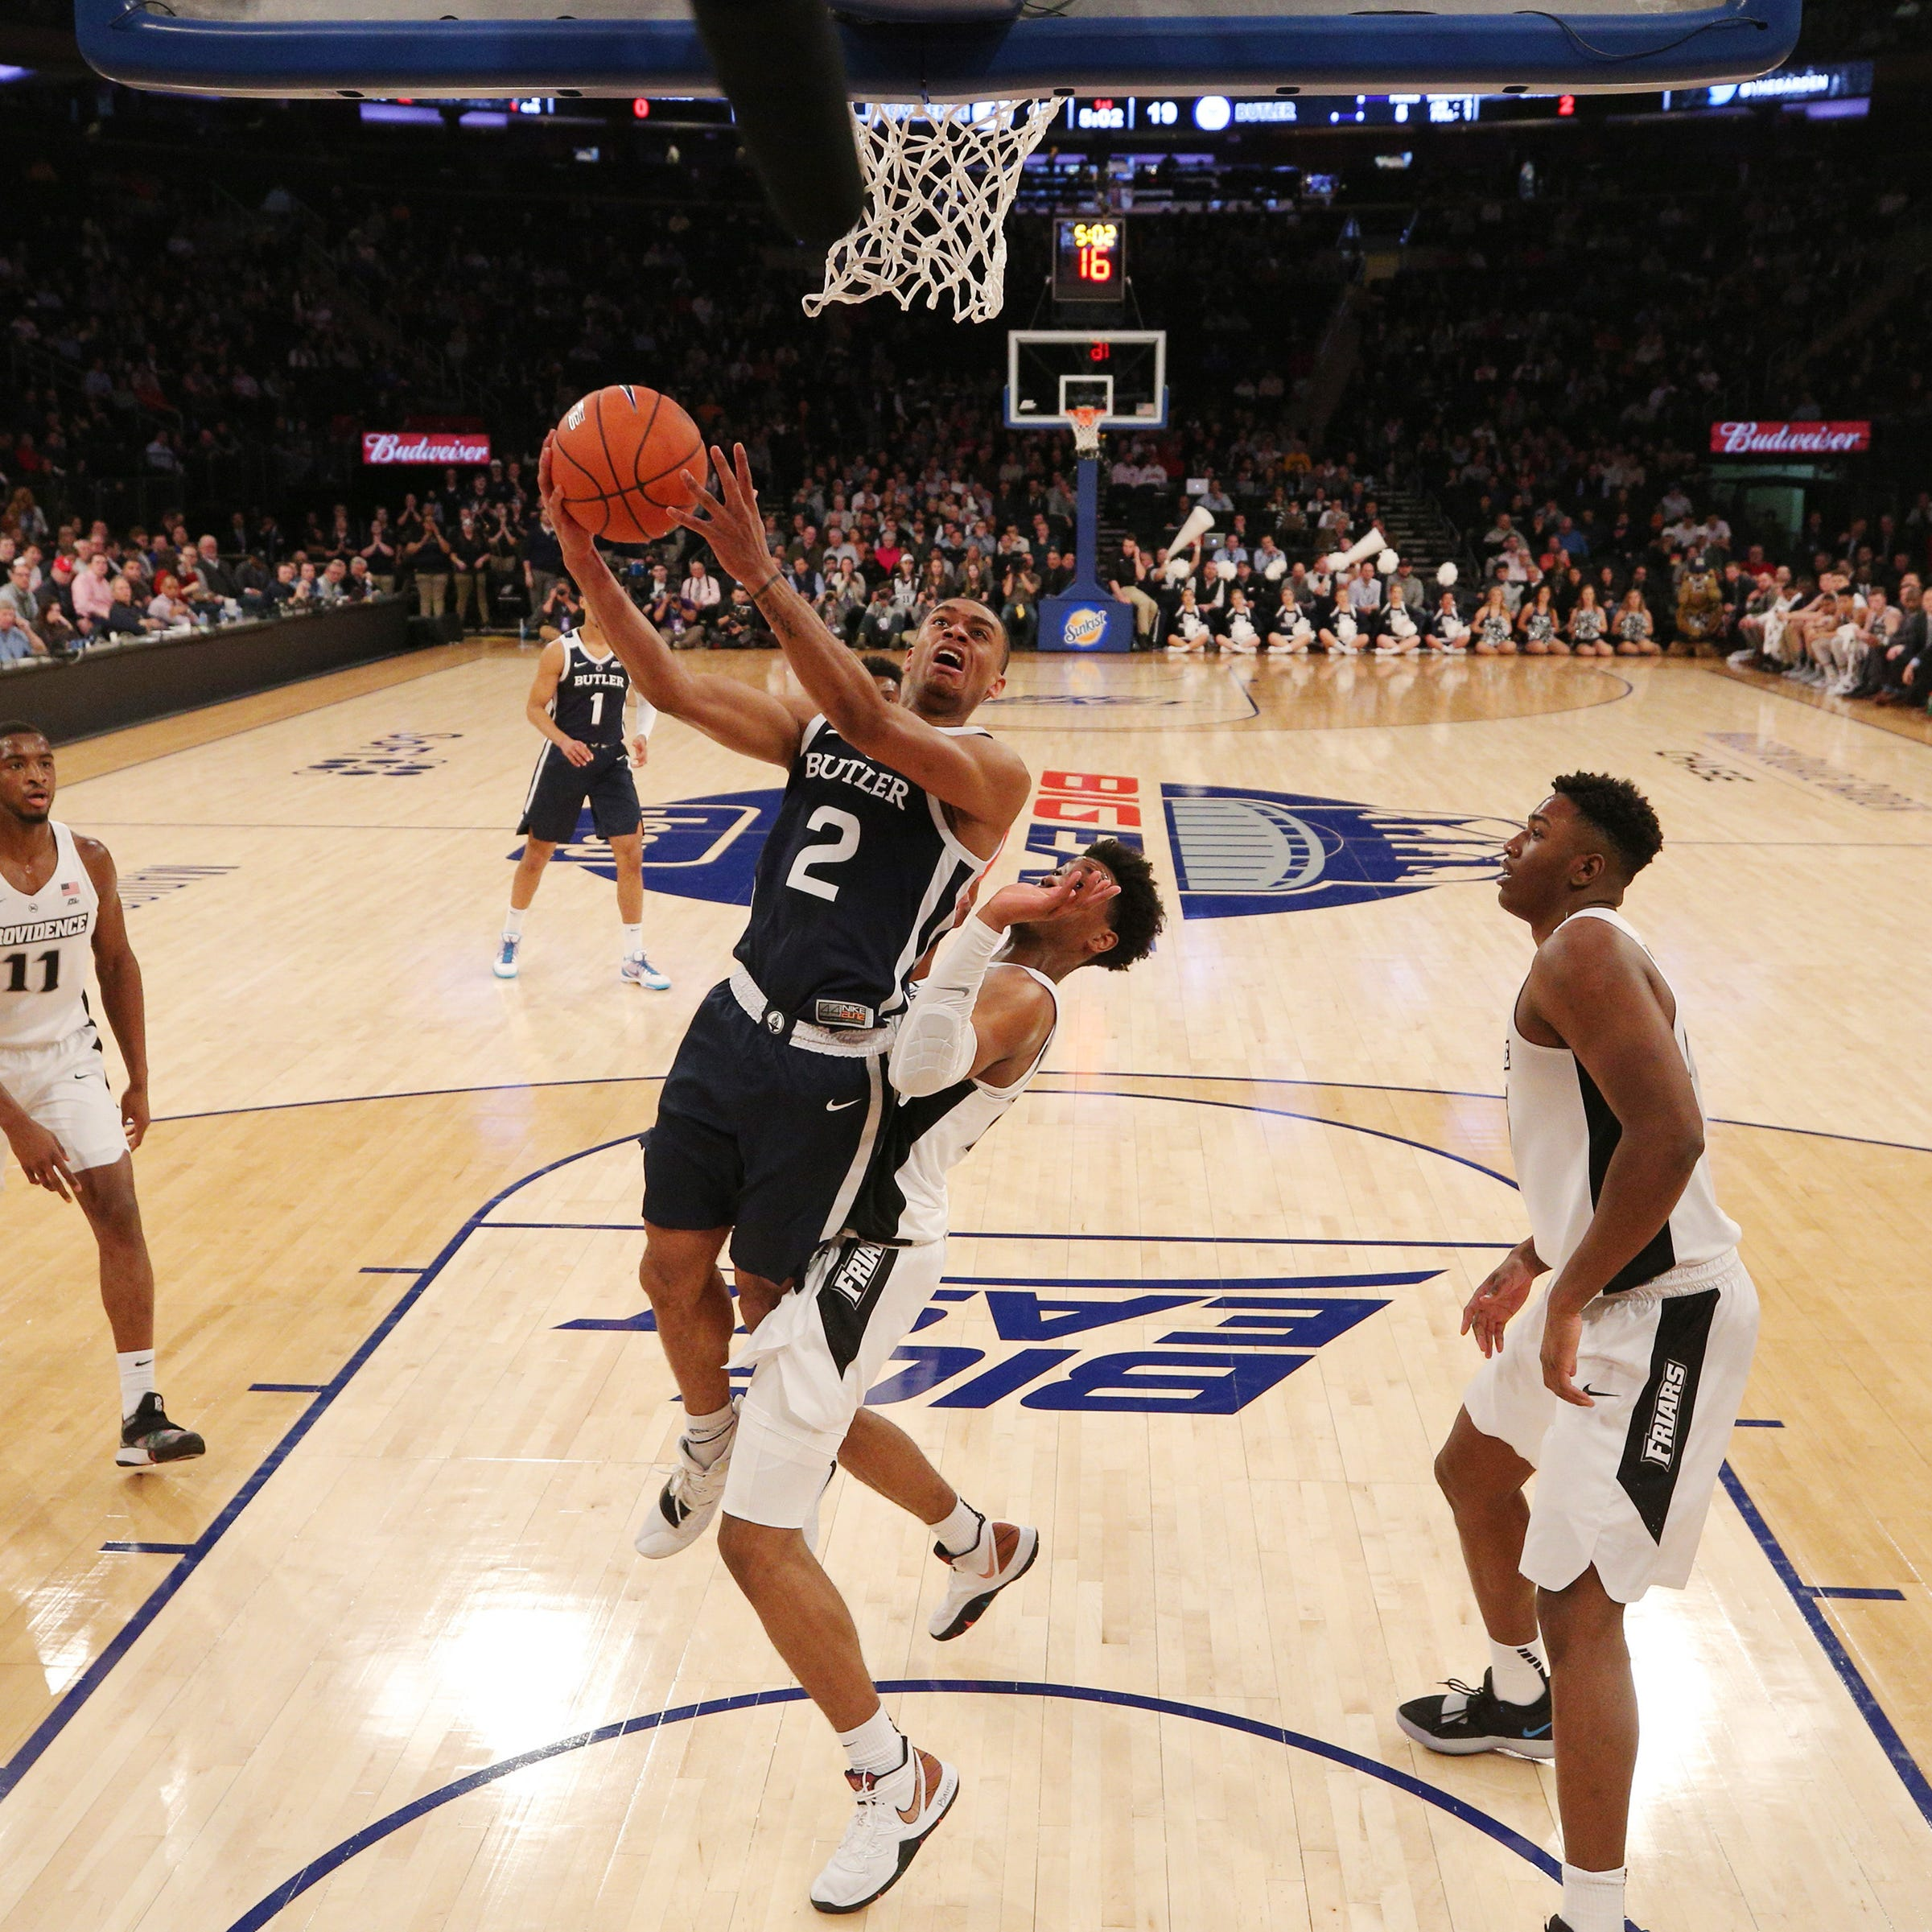 Butler's season likely over after blowout loss to Providence in Big East tournament